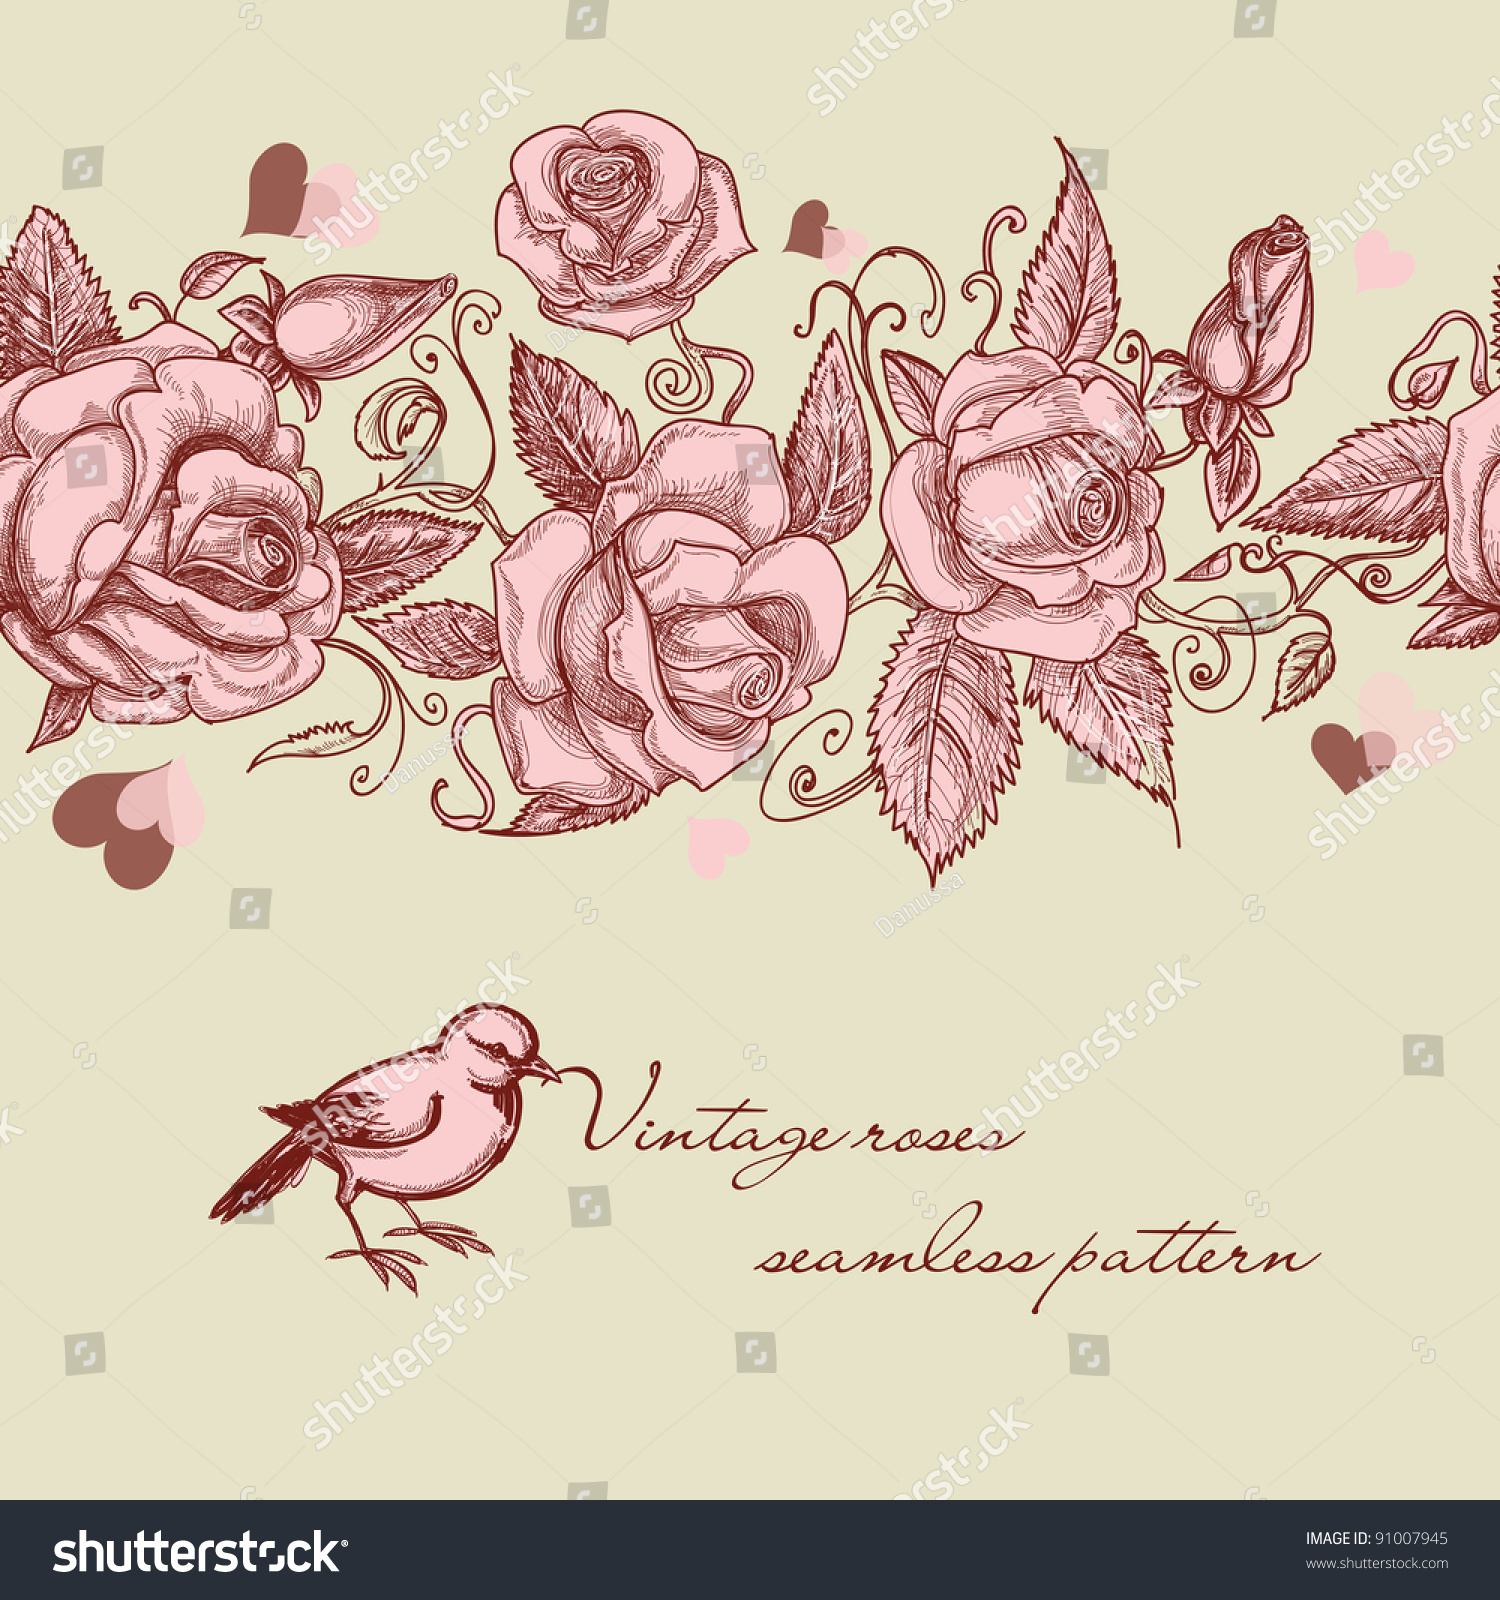 Vintage Roses Seamless Pattern Stock Vector Illustration ...